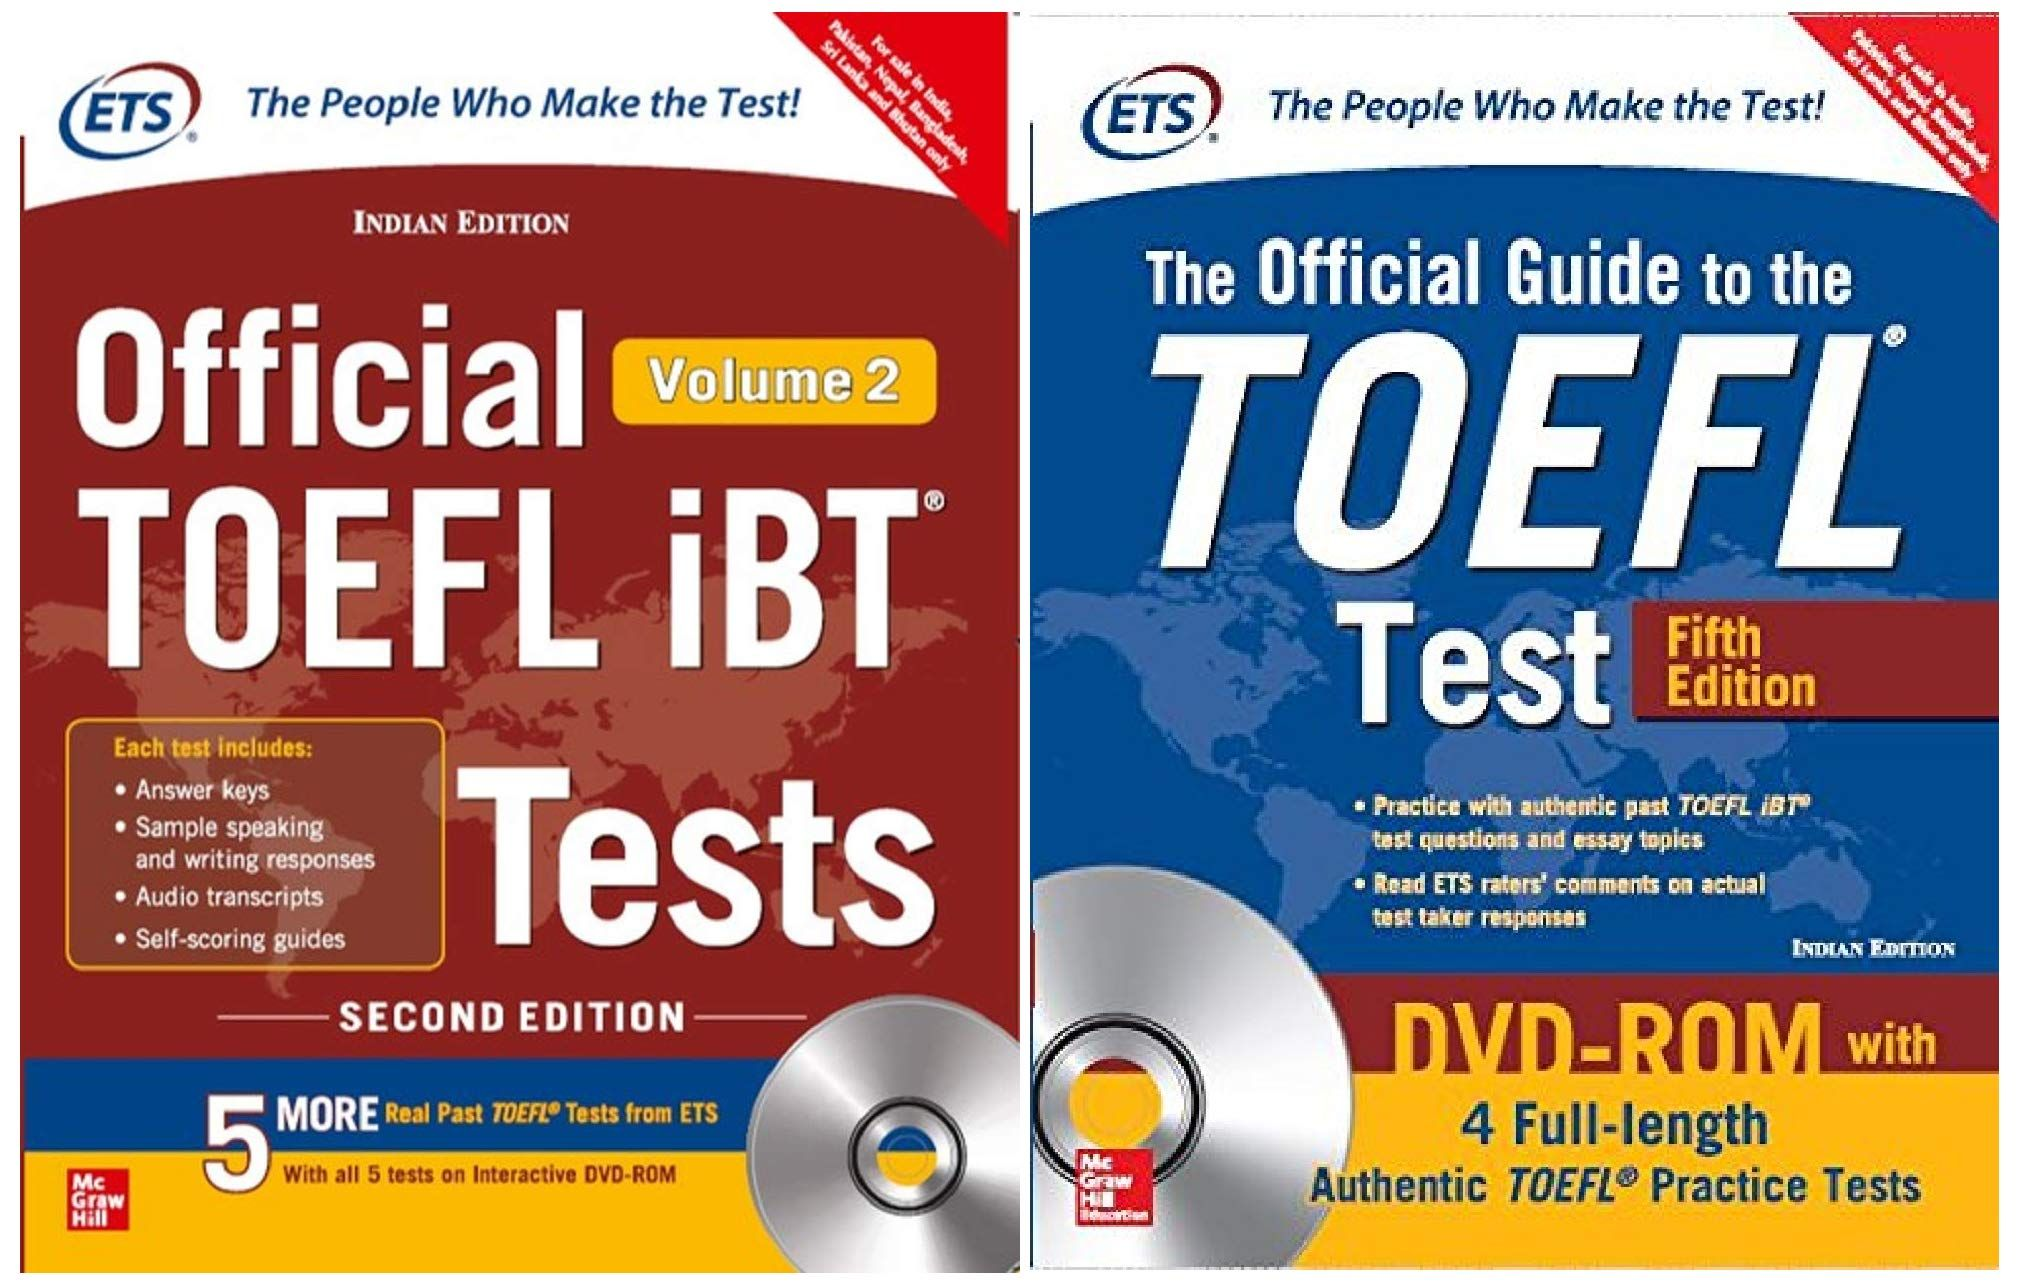 The Official Guide To The Toefl Test With 4 Full Length Authentic Toefl Practice Tests On Dvd Rom Official Toefl Ibt Tests Volume Ii